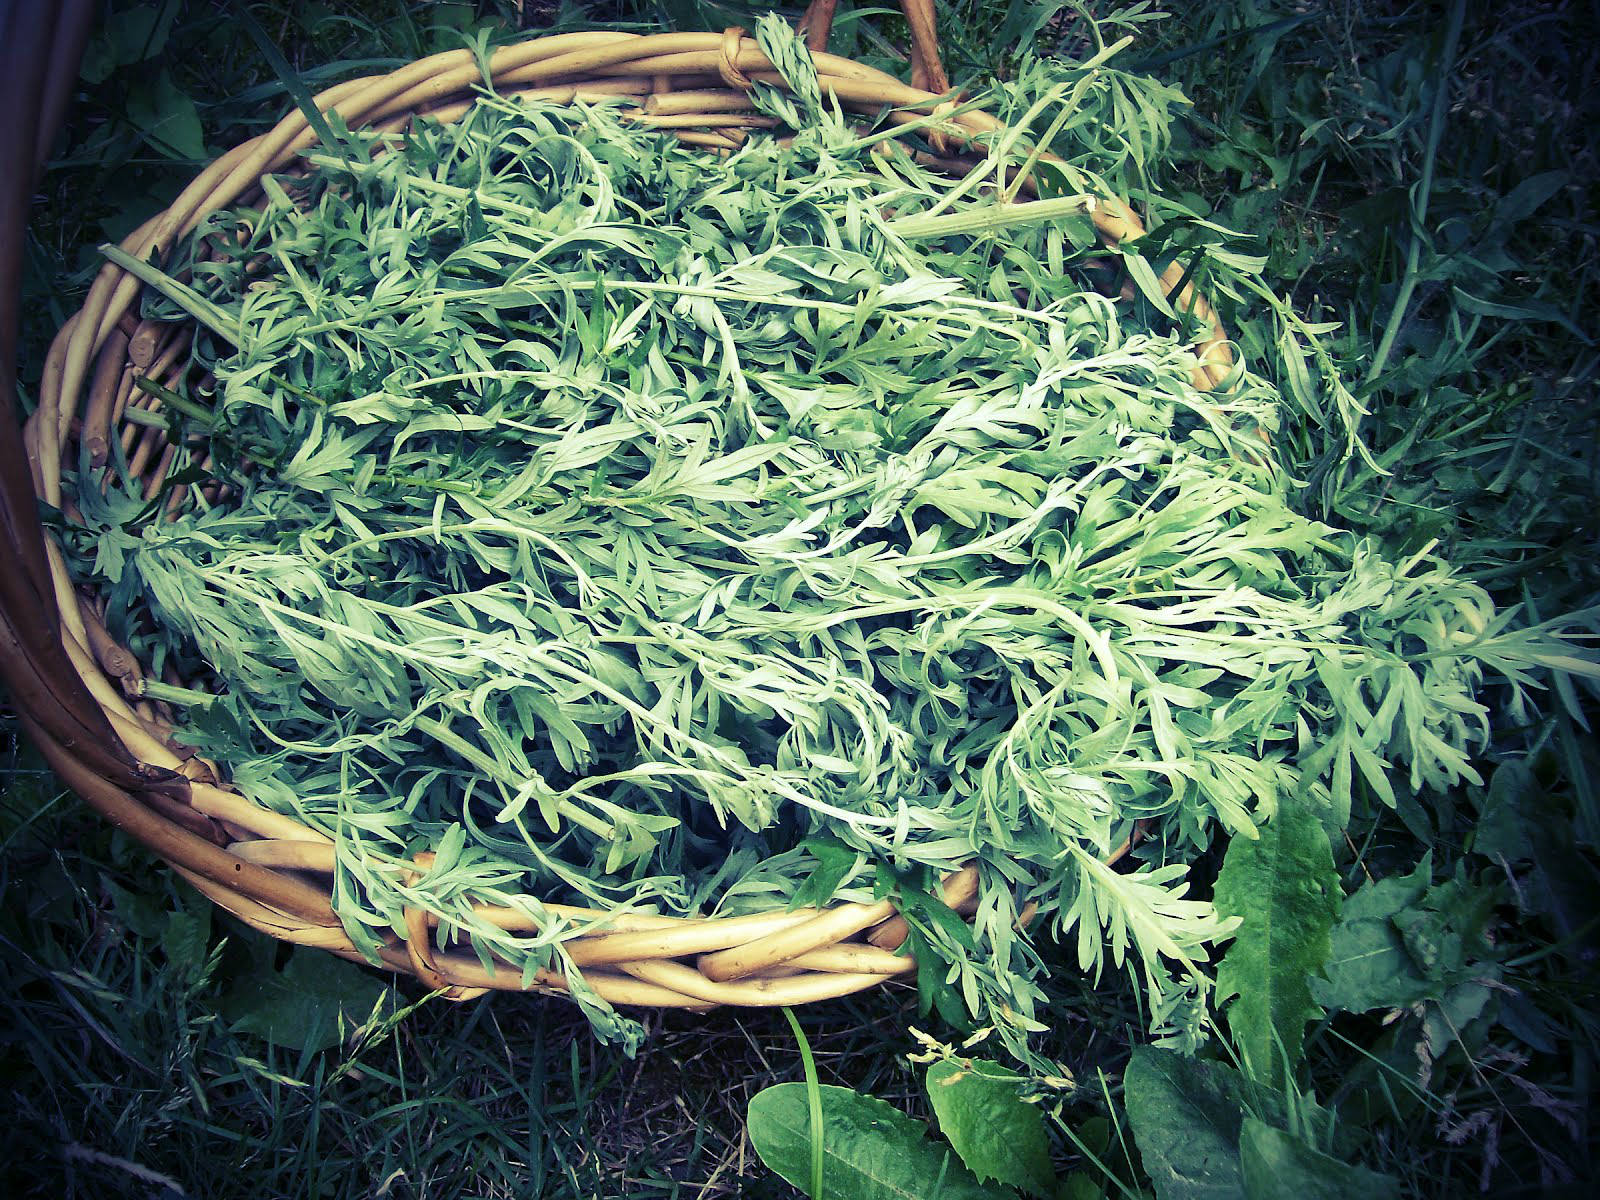 Artemisia annua - Amazing Herb that Kills 98% of the Cancer Cells